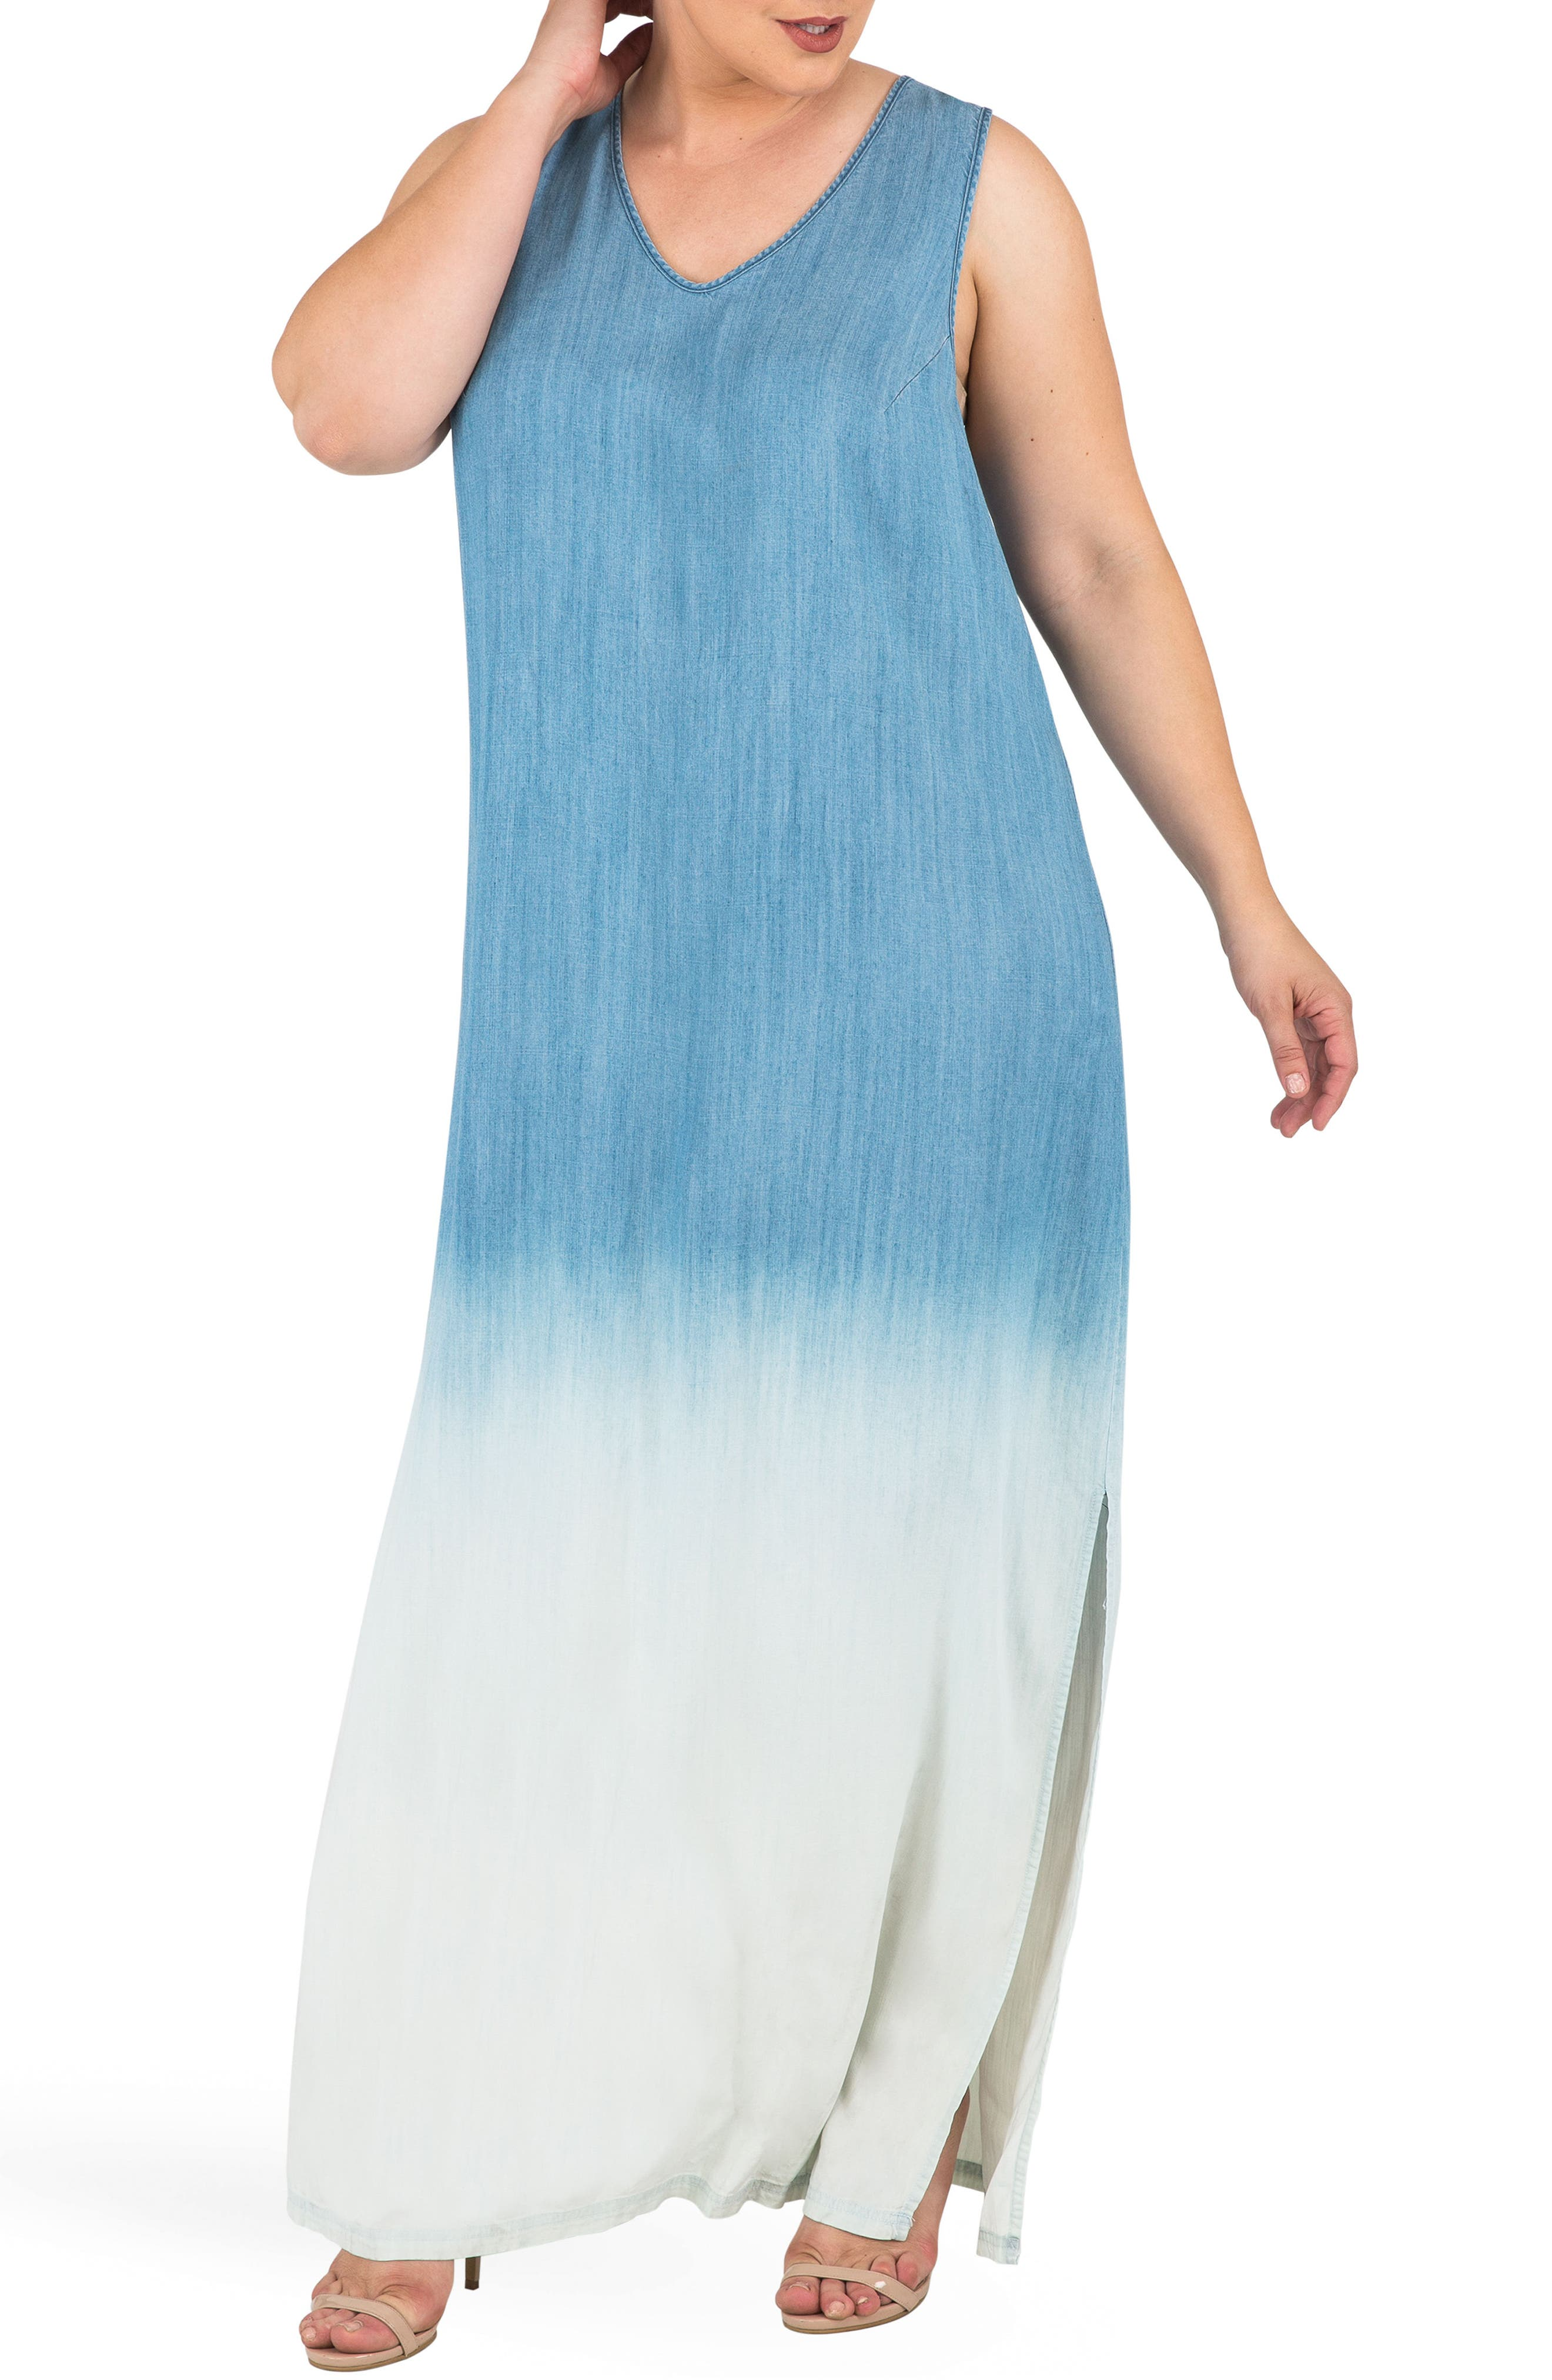 Angie Ombré Chmbray Maxi Dress,                             Main thumbnail 1, color,                             BLUE